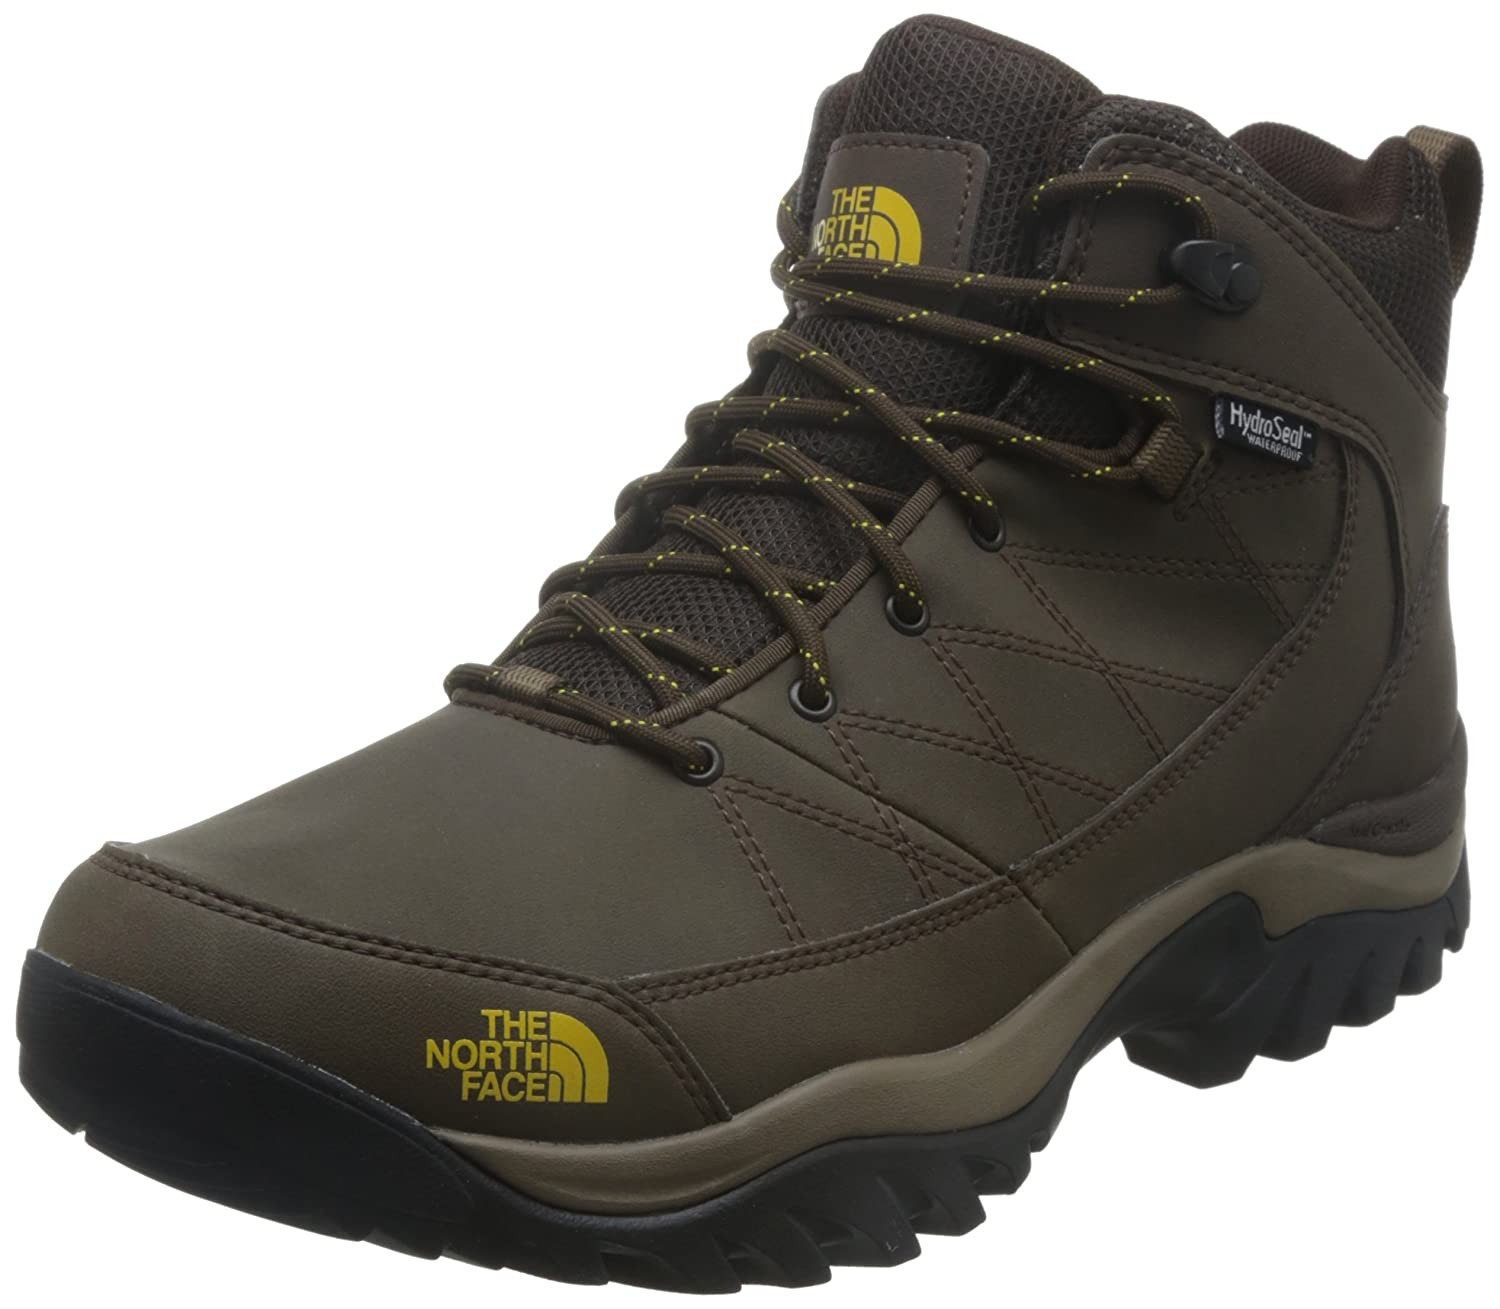 The North Face M Storm Strike WP, Botas de Senderismo Hombre 39 EU|Multicolor (Slategy/Lprdylw Nmd)